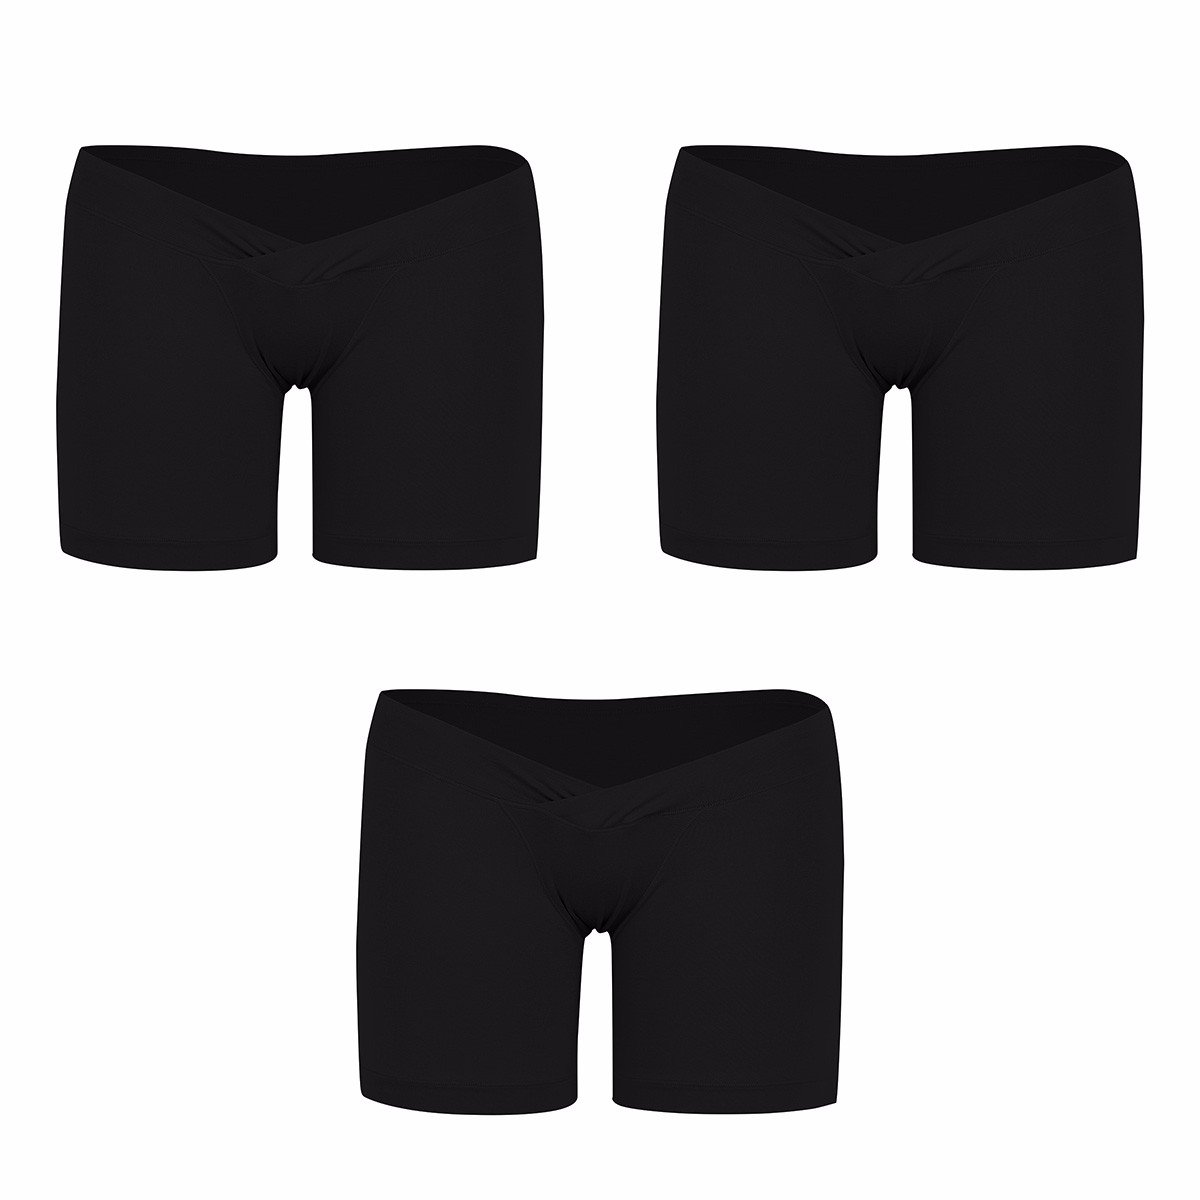 82535ce64ef43 FEESHOW 3 Pack Women s Under The Bump Maternity Panties Pregnancy Underwear  Healthy Boyshort at Amazon Women s Clothing store